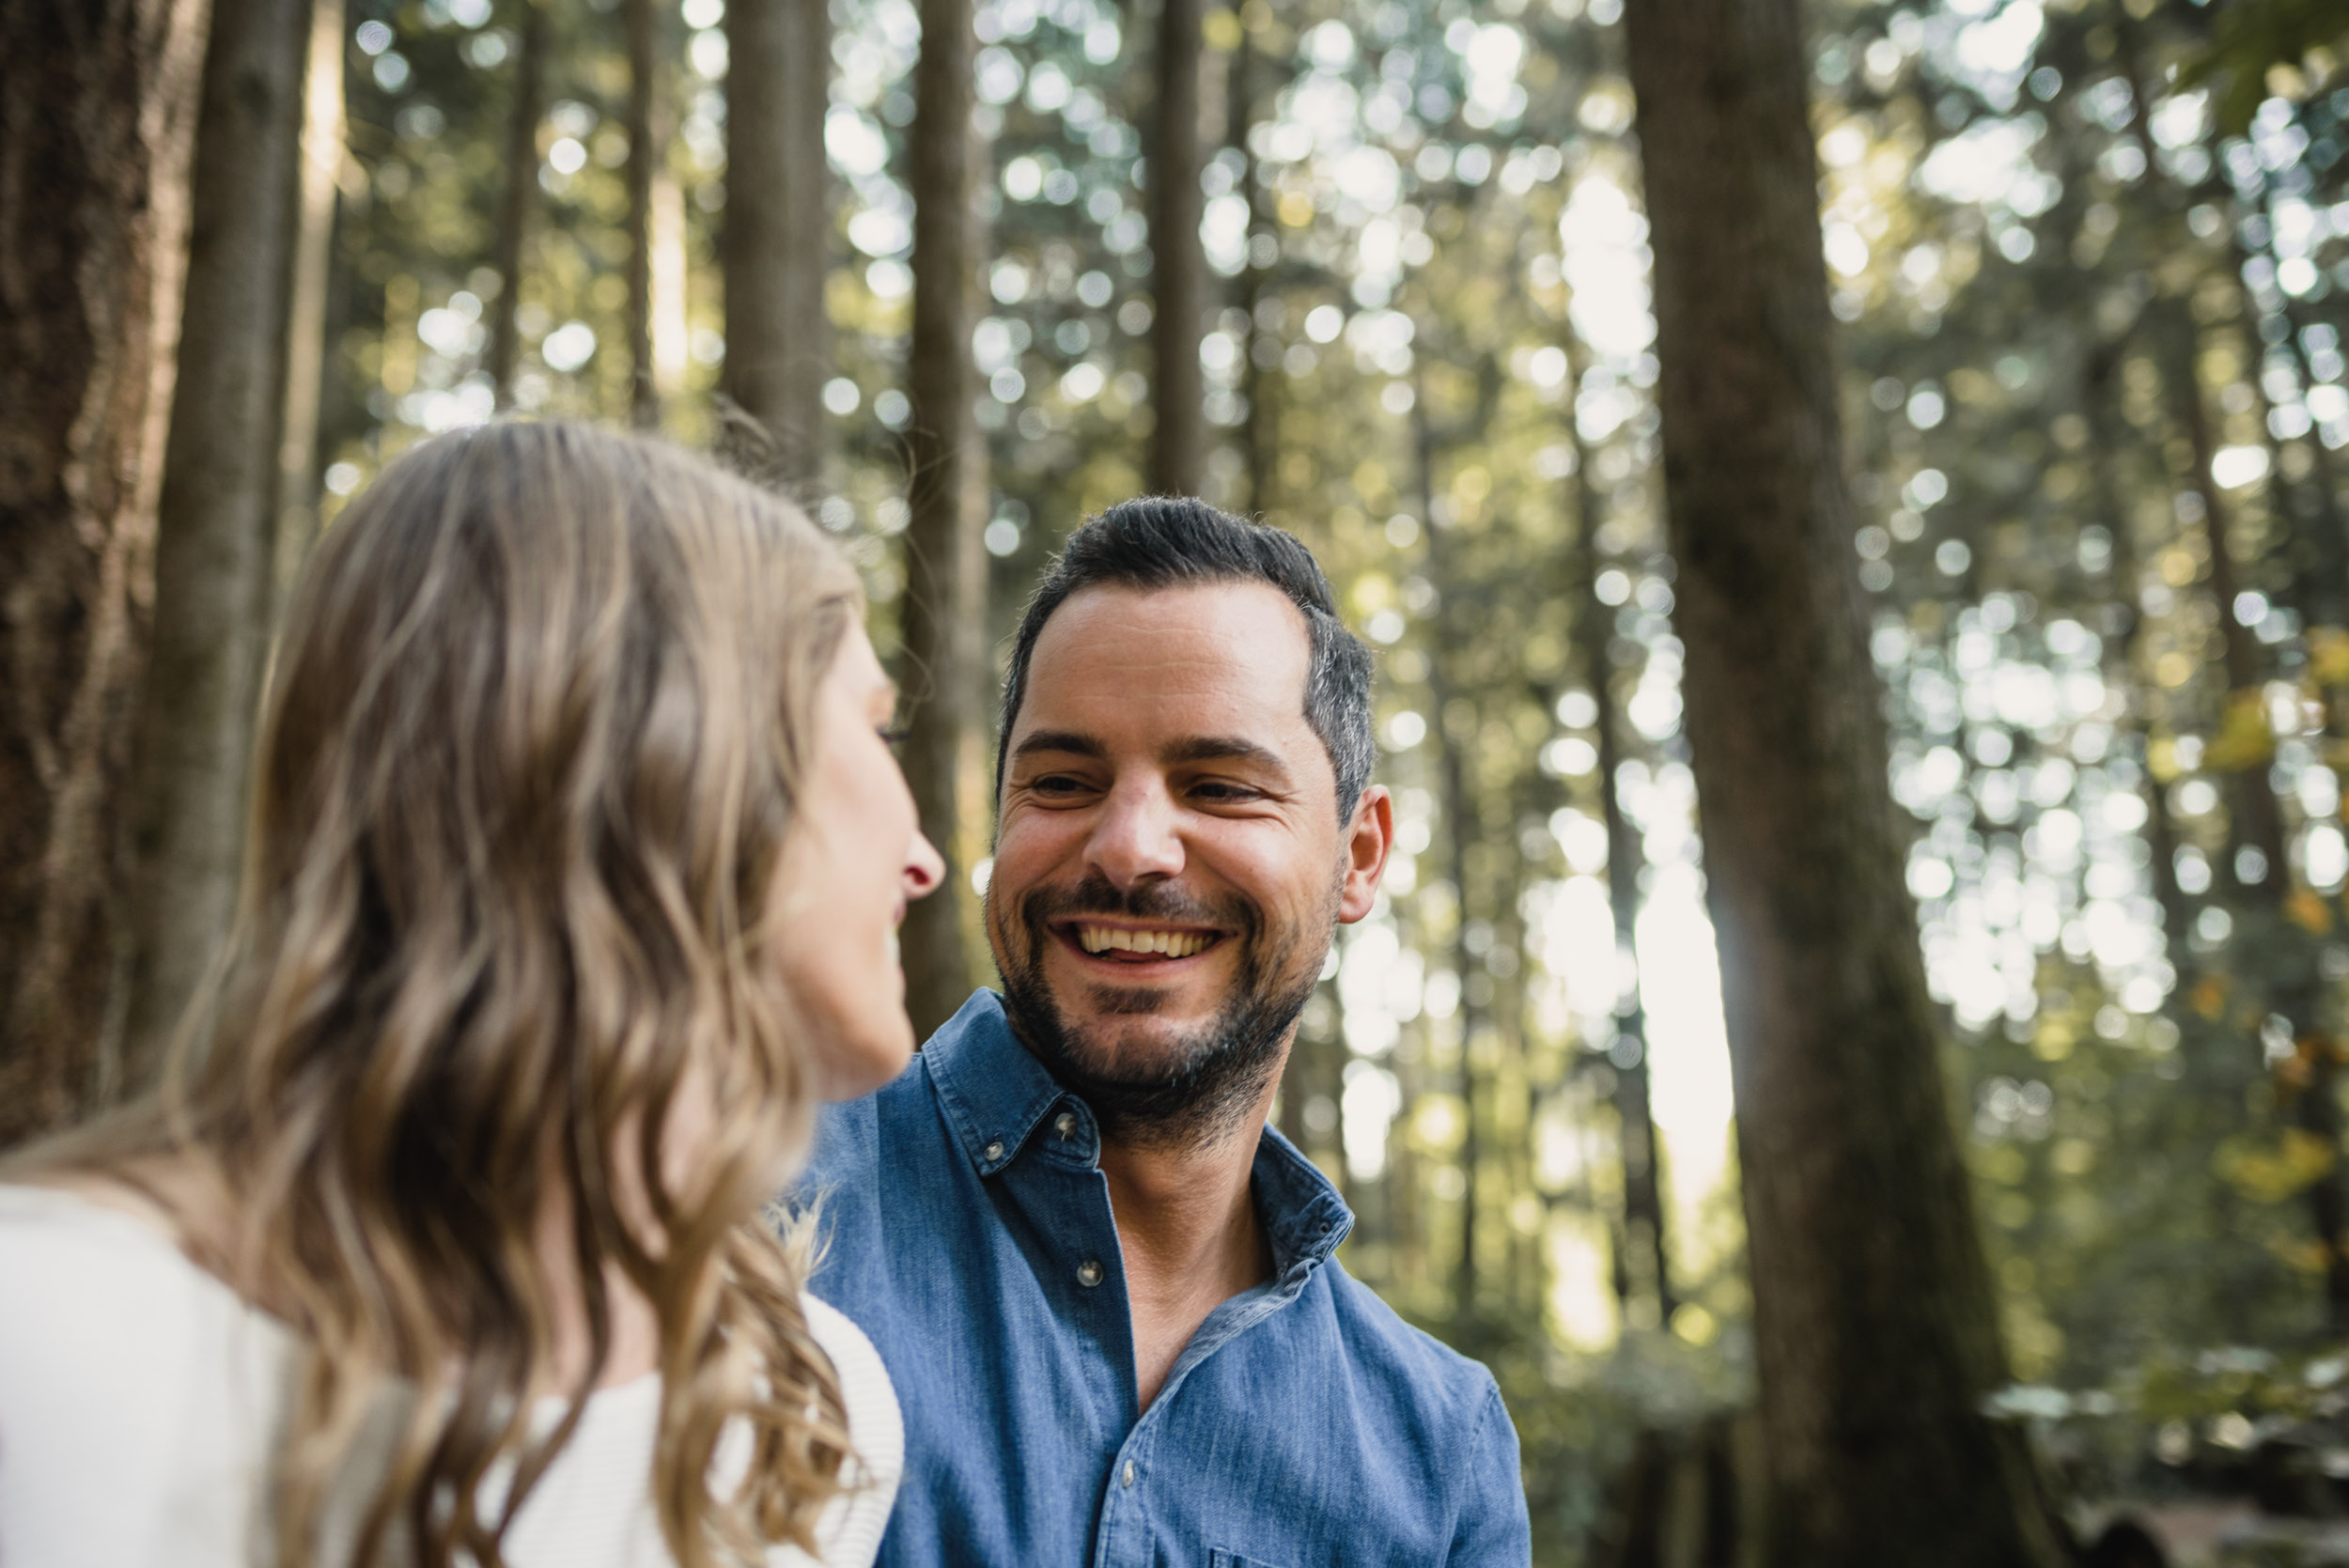 Couple hanging out in forest looking at each other